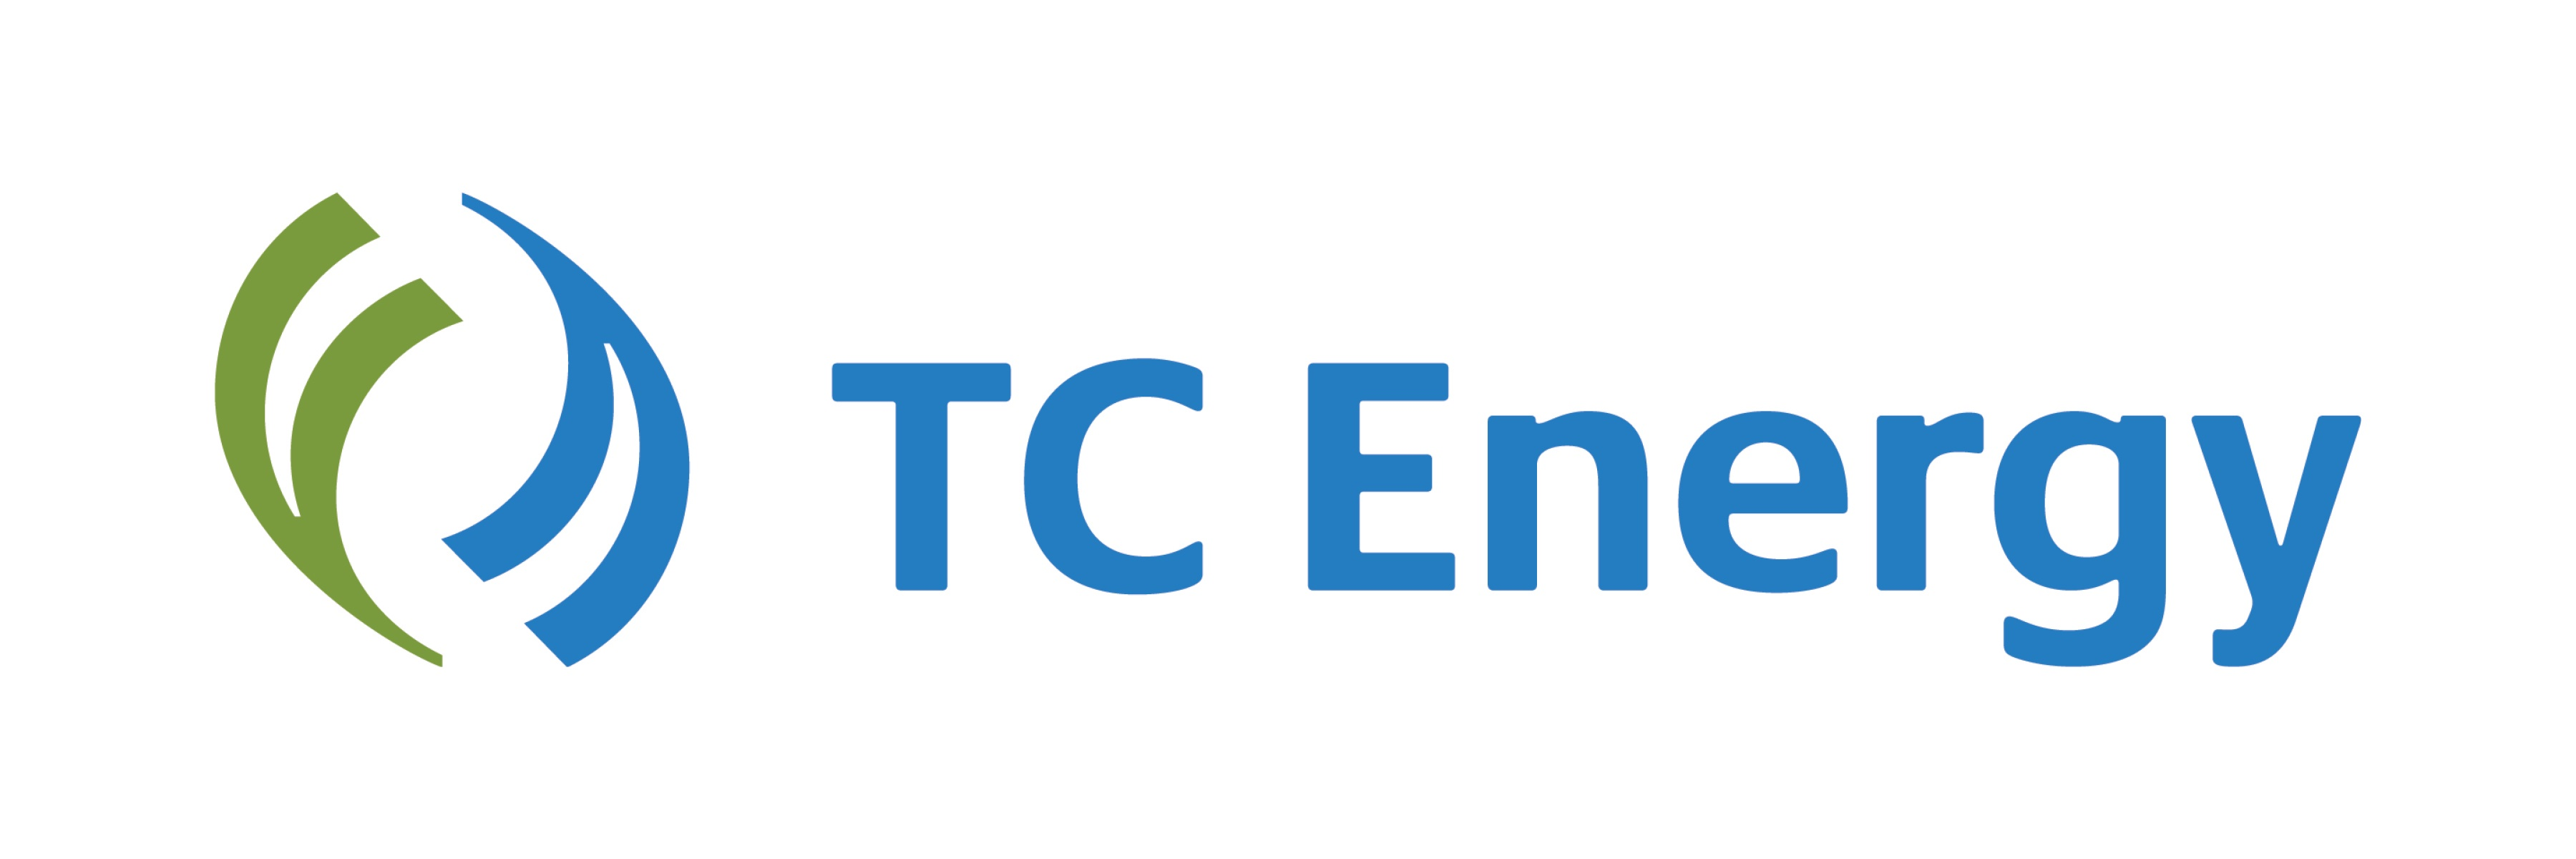 TC Energy's #BetterTogether Campaign to triple donations in support of those affected by COVID-19